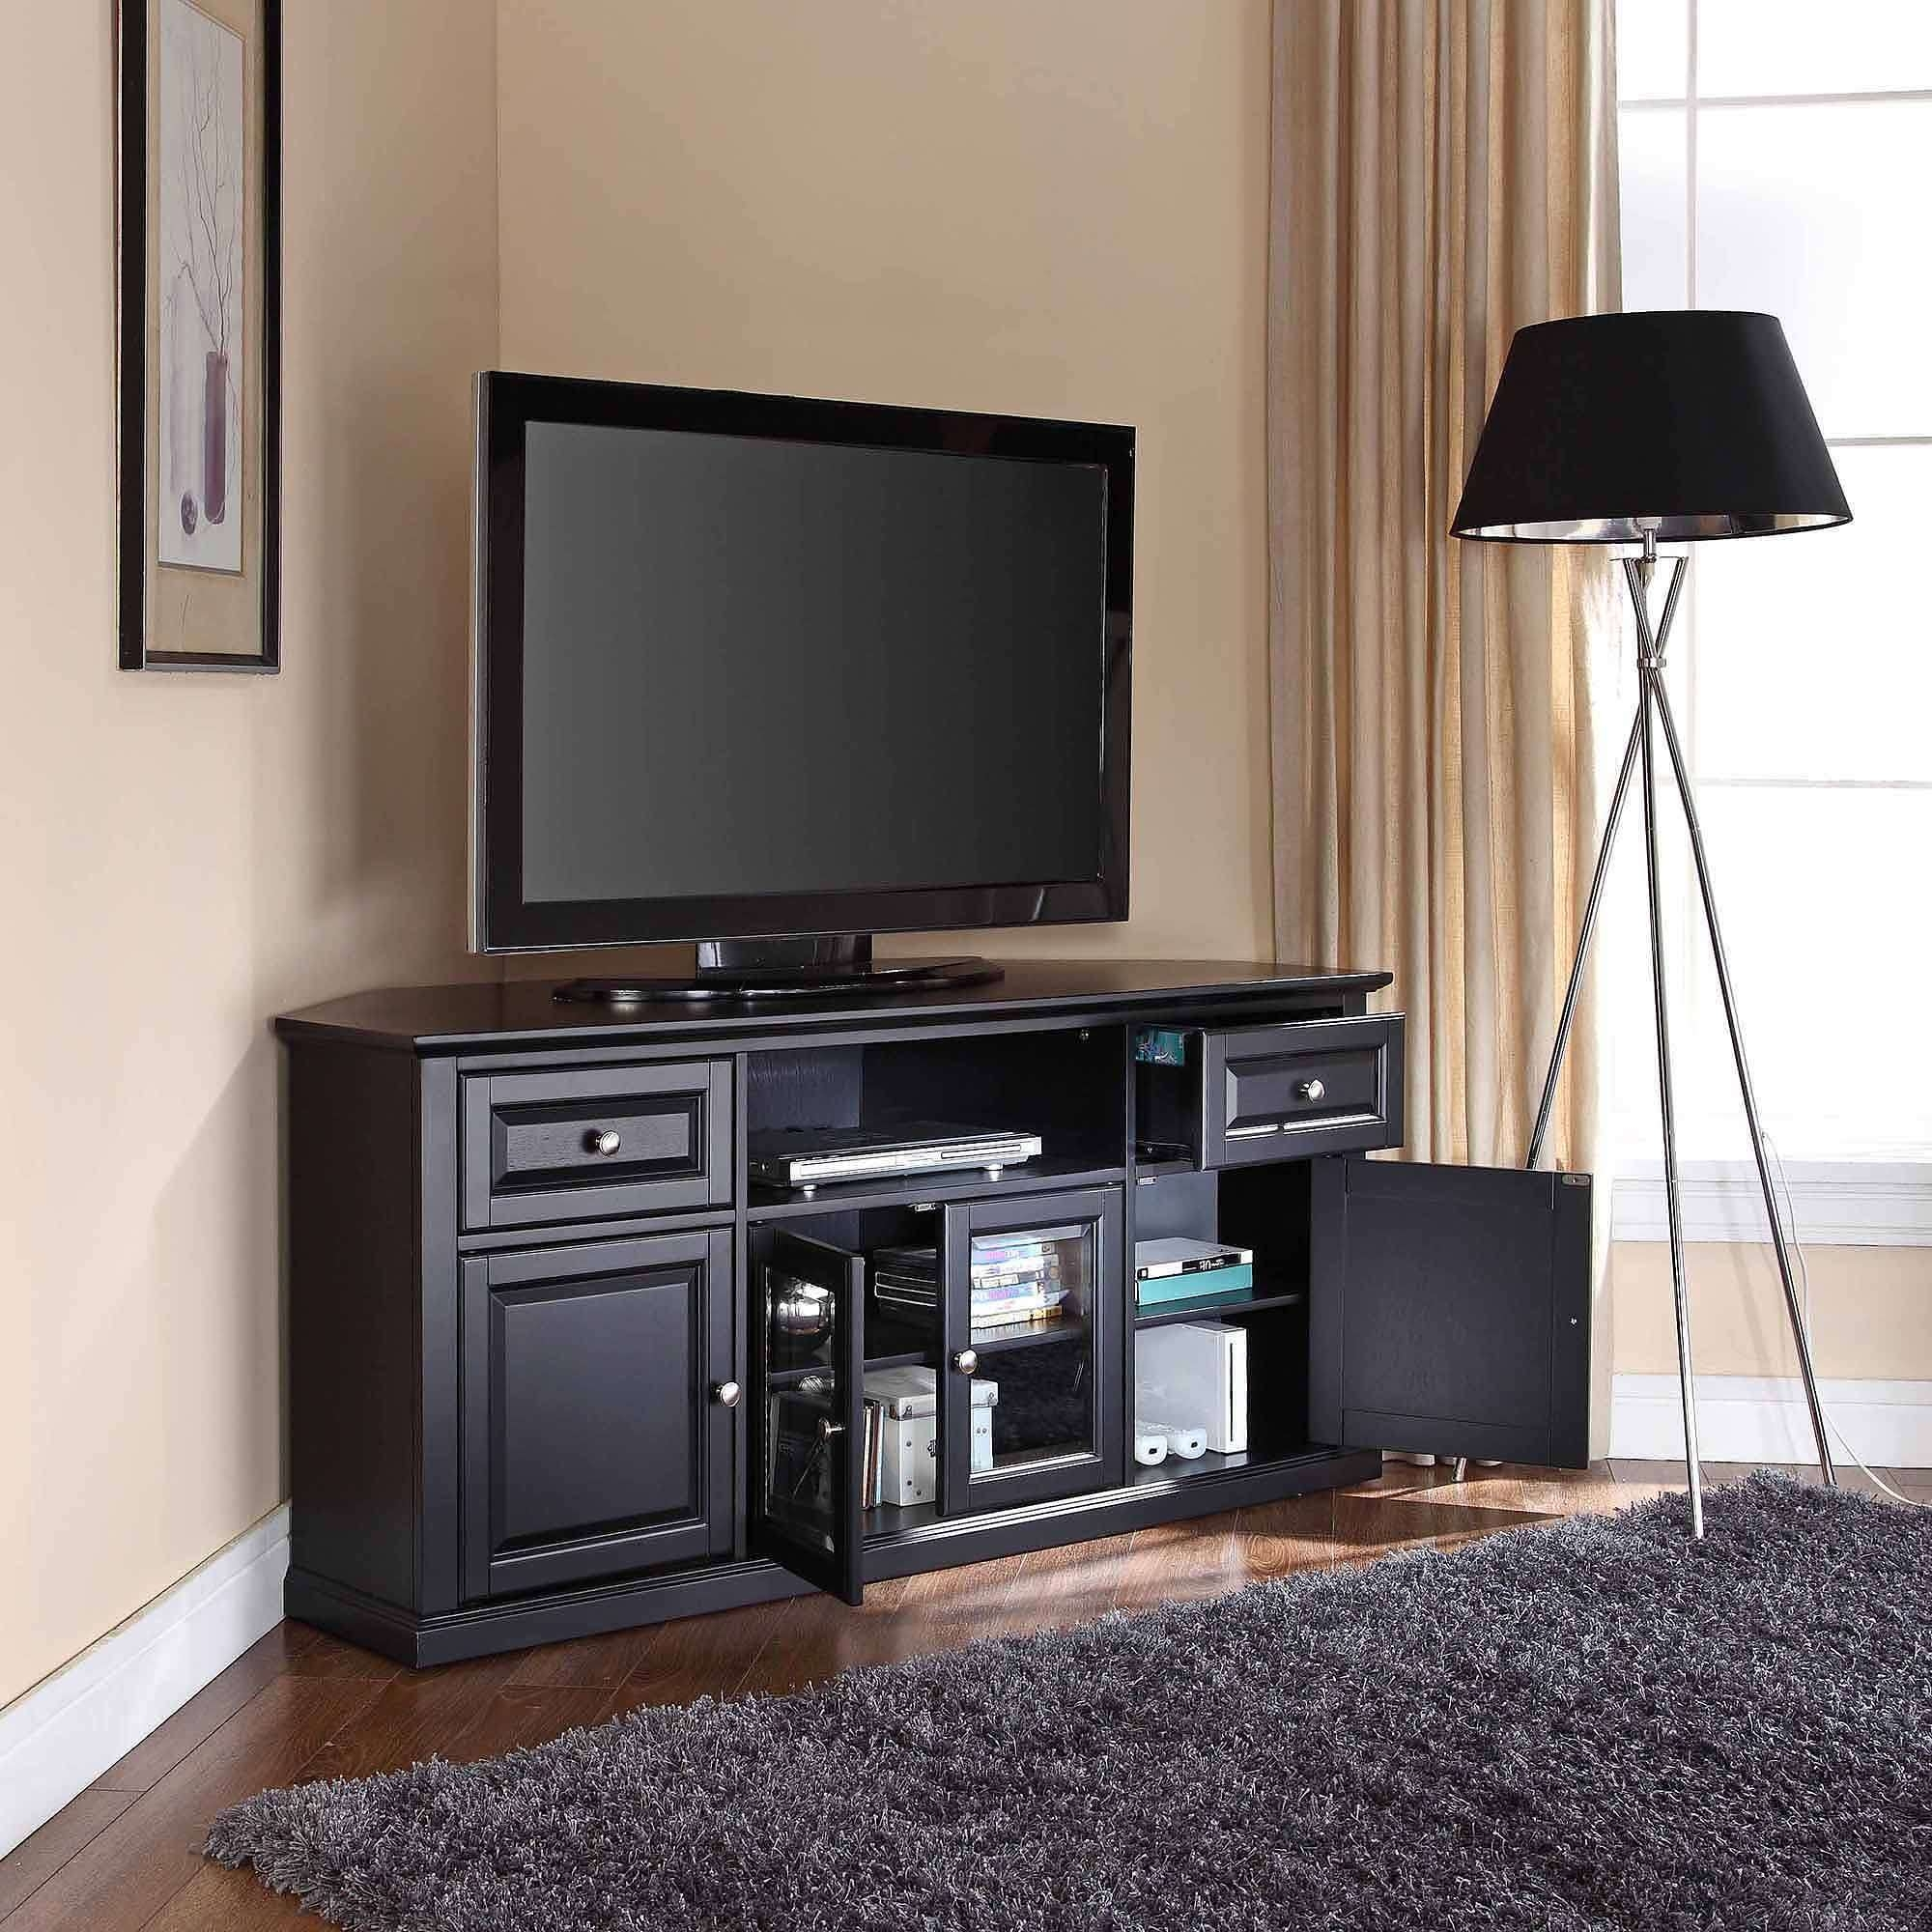 Tv Stand : 32 Unusual 55 Inch Corner Tv Stand With Mount Images Intended For 32 Inch Corner Tv Stands (View 4 of 15)